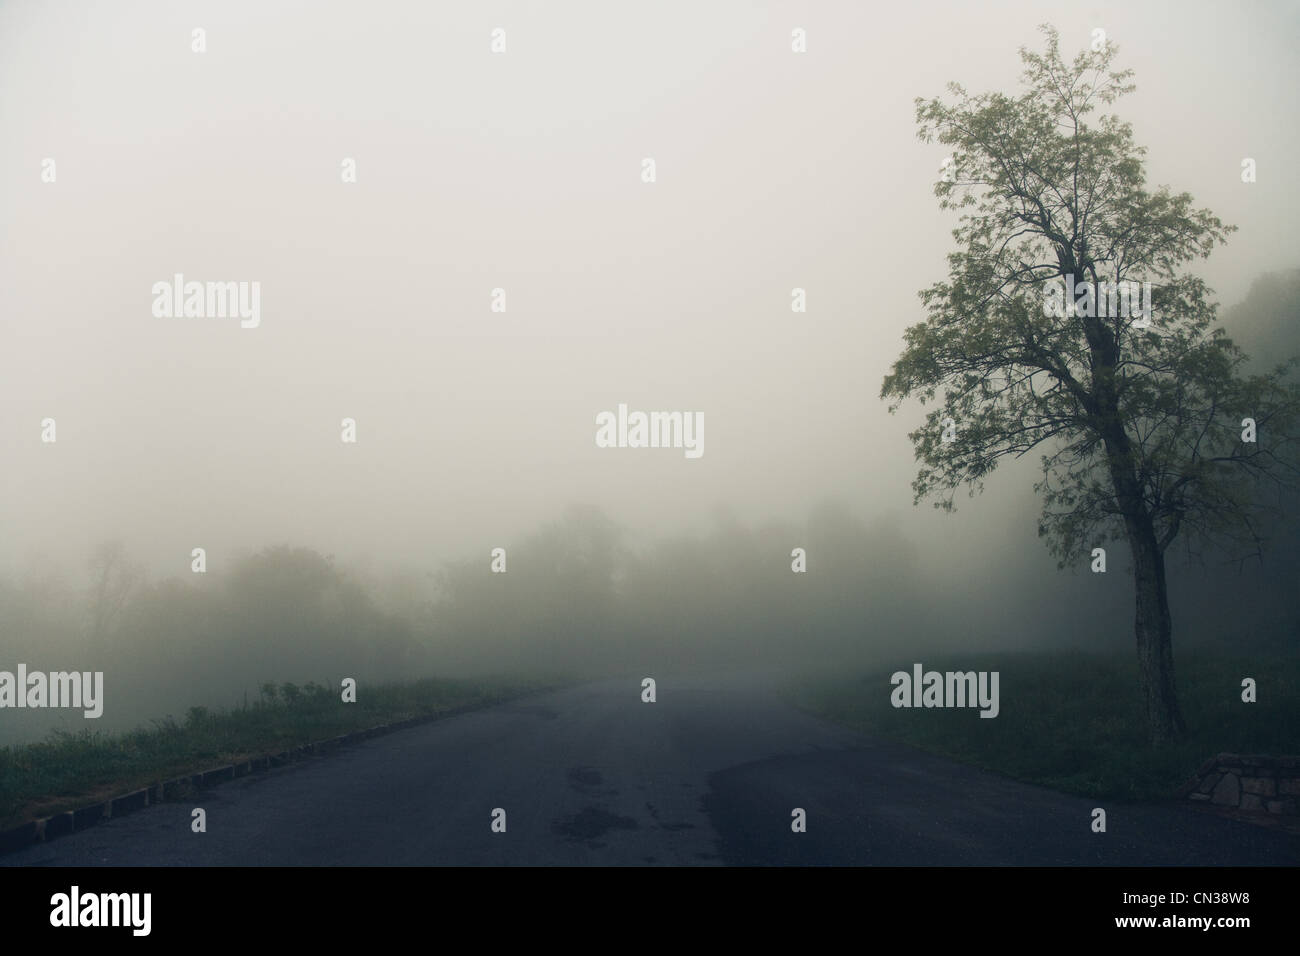 Tree and road in fog, Virginia, USA - Stock Image